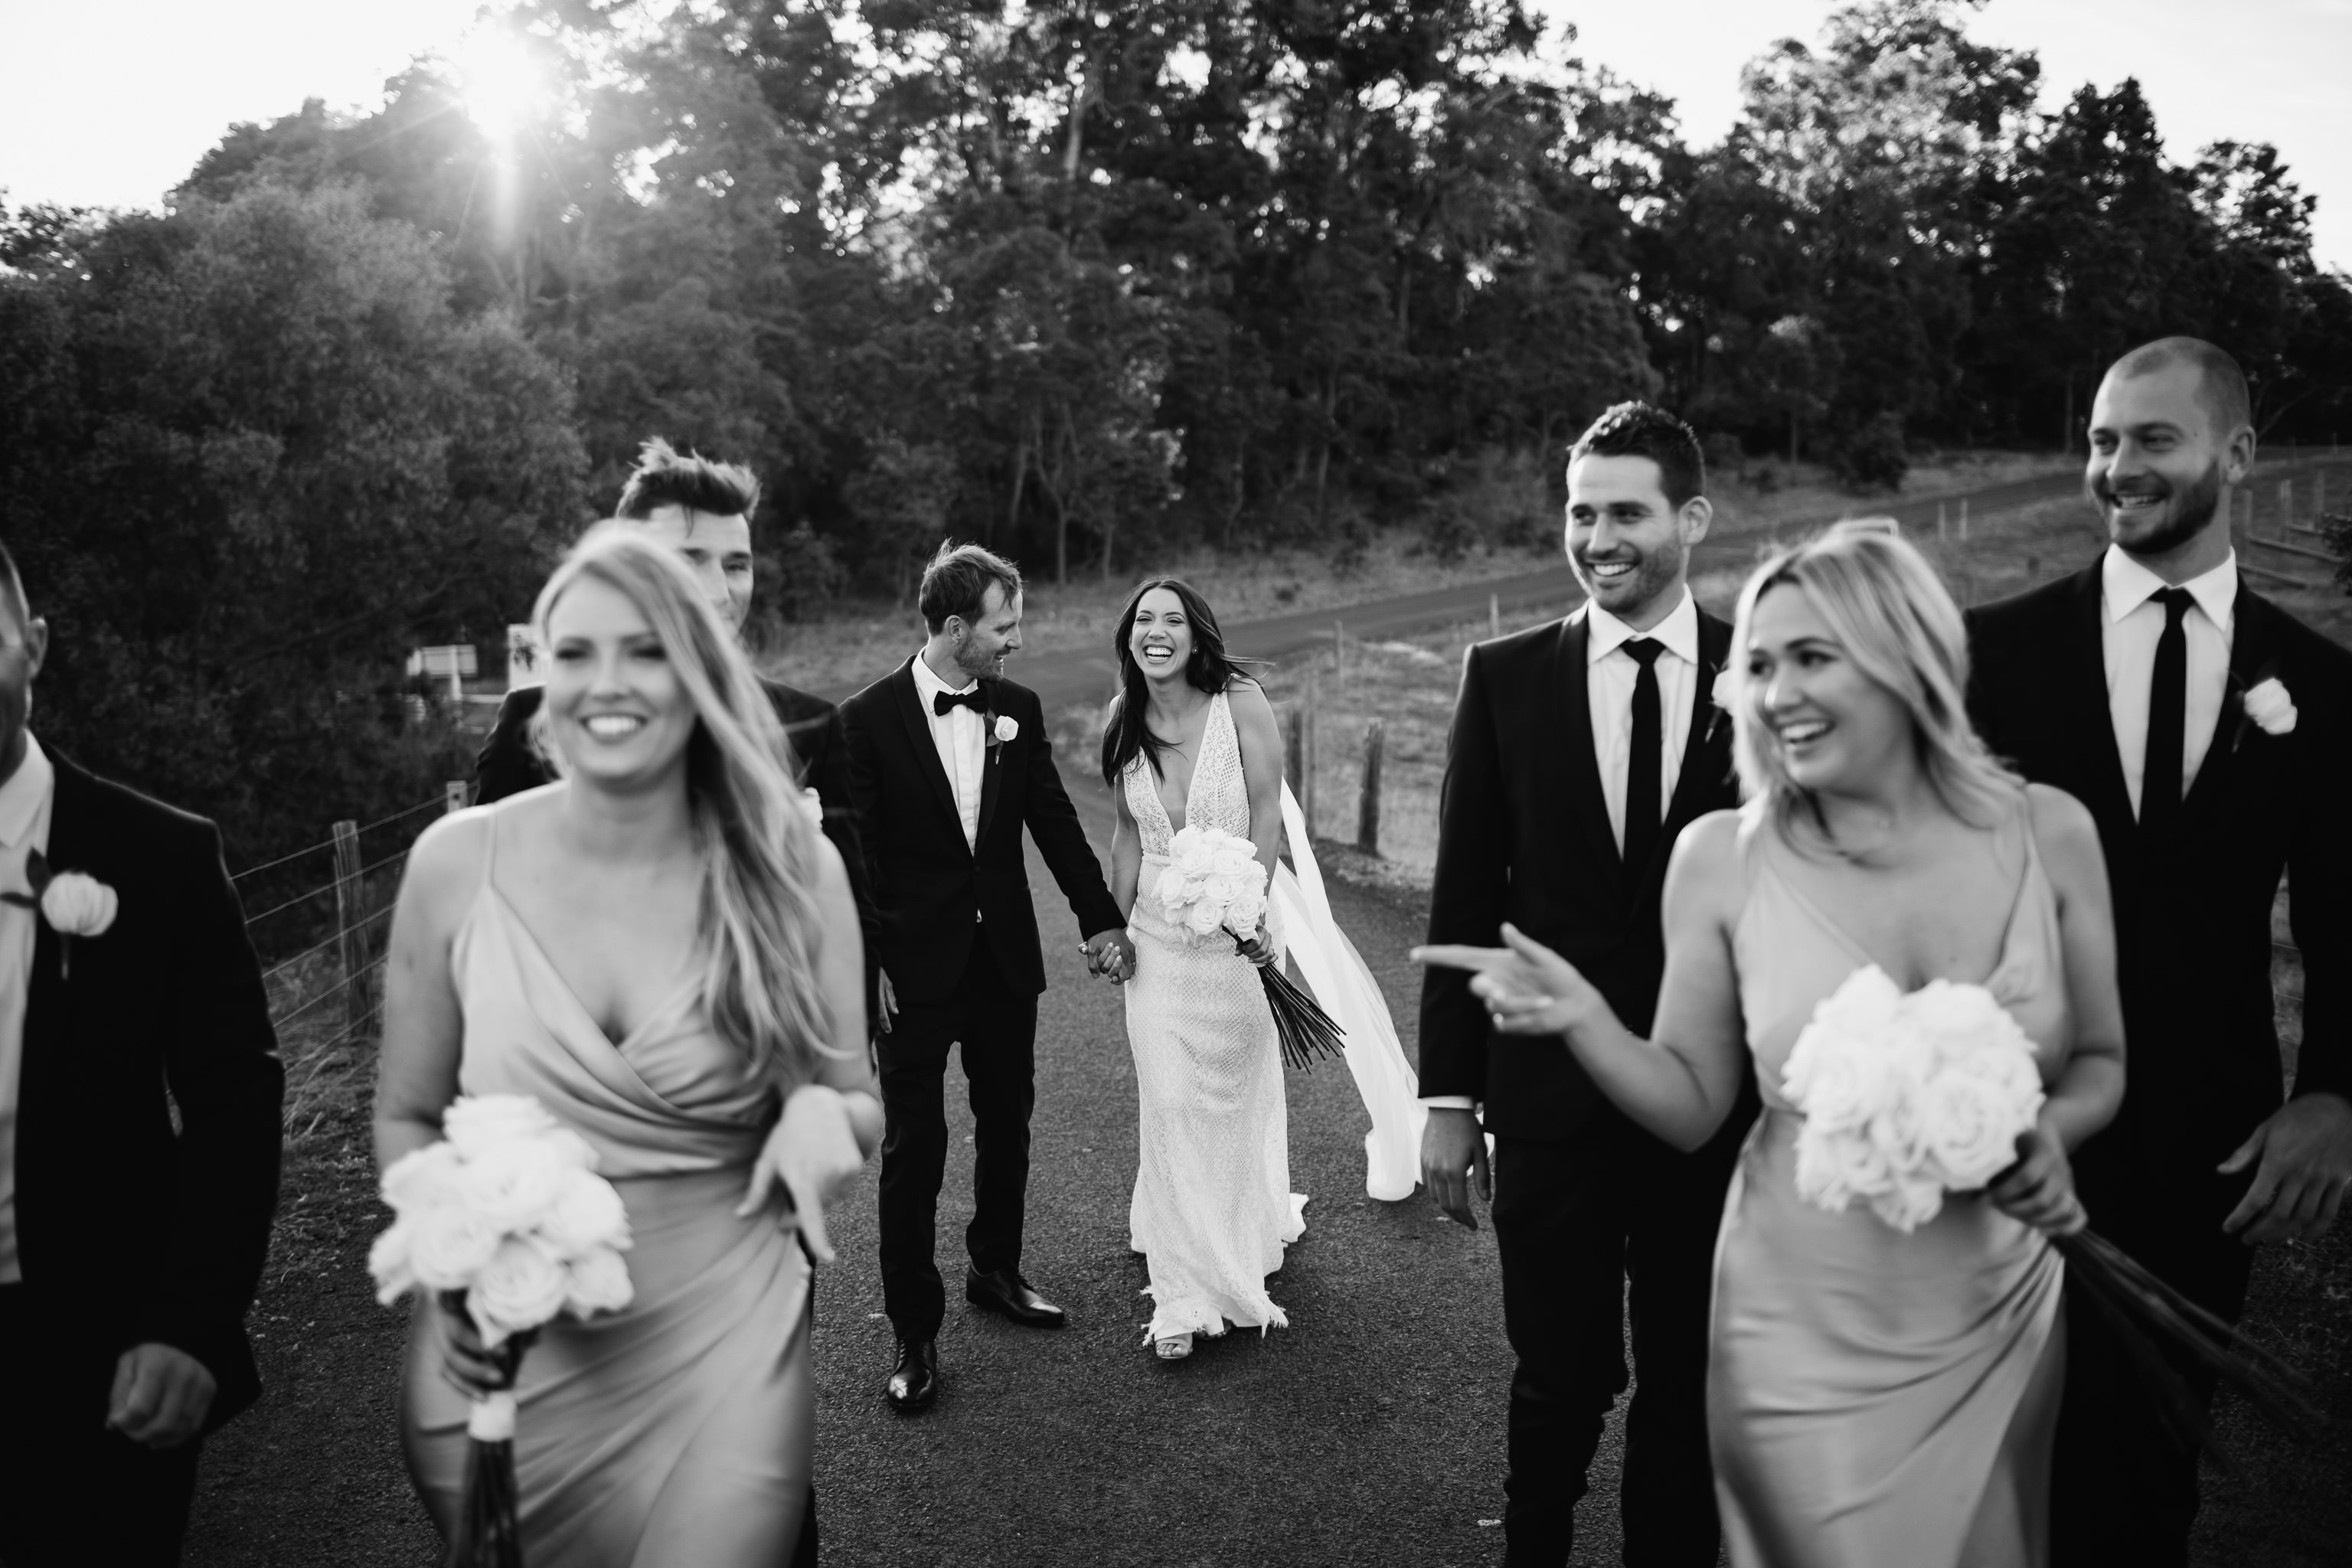 Black and white photo of bride and groom laughing as they walk along a road with Australian bush in the background and bridal party in the foreground